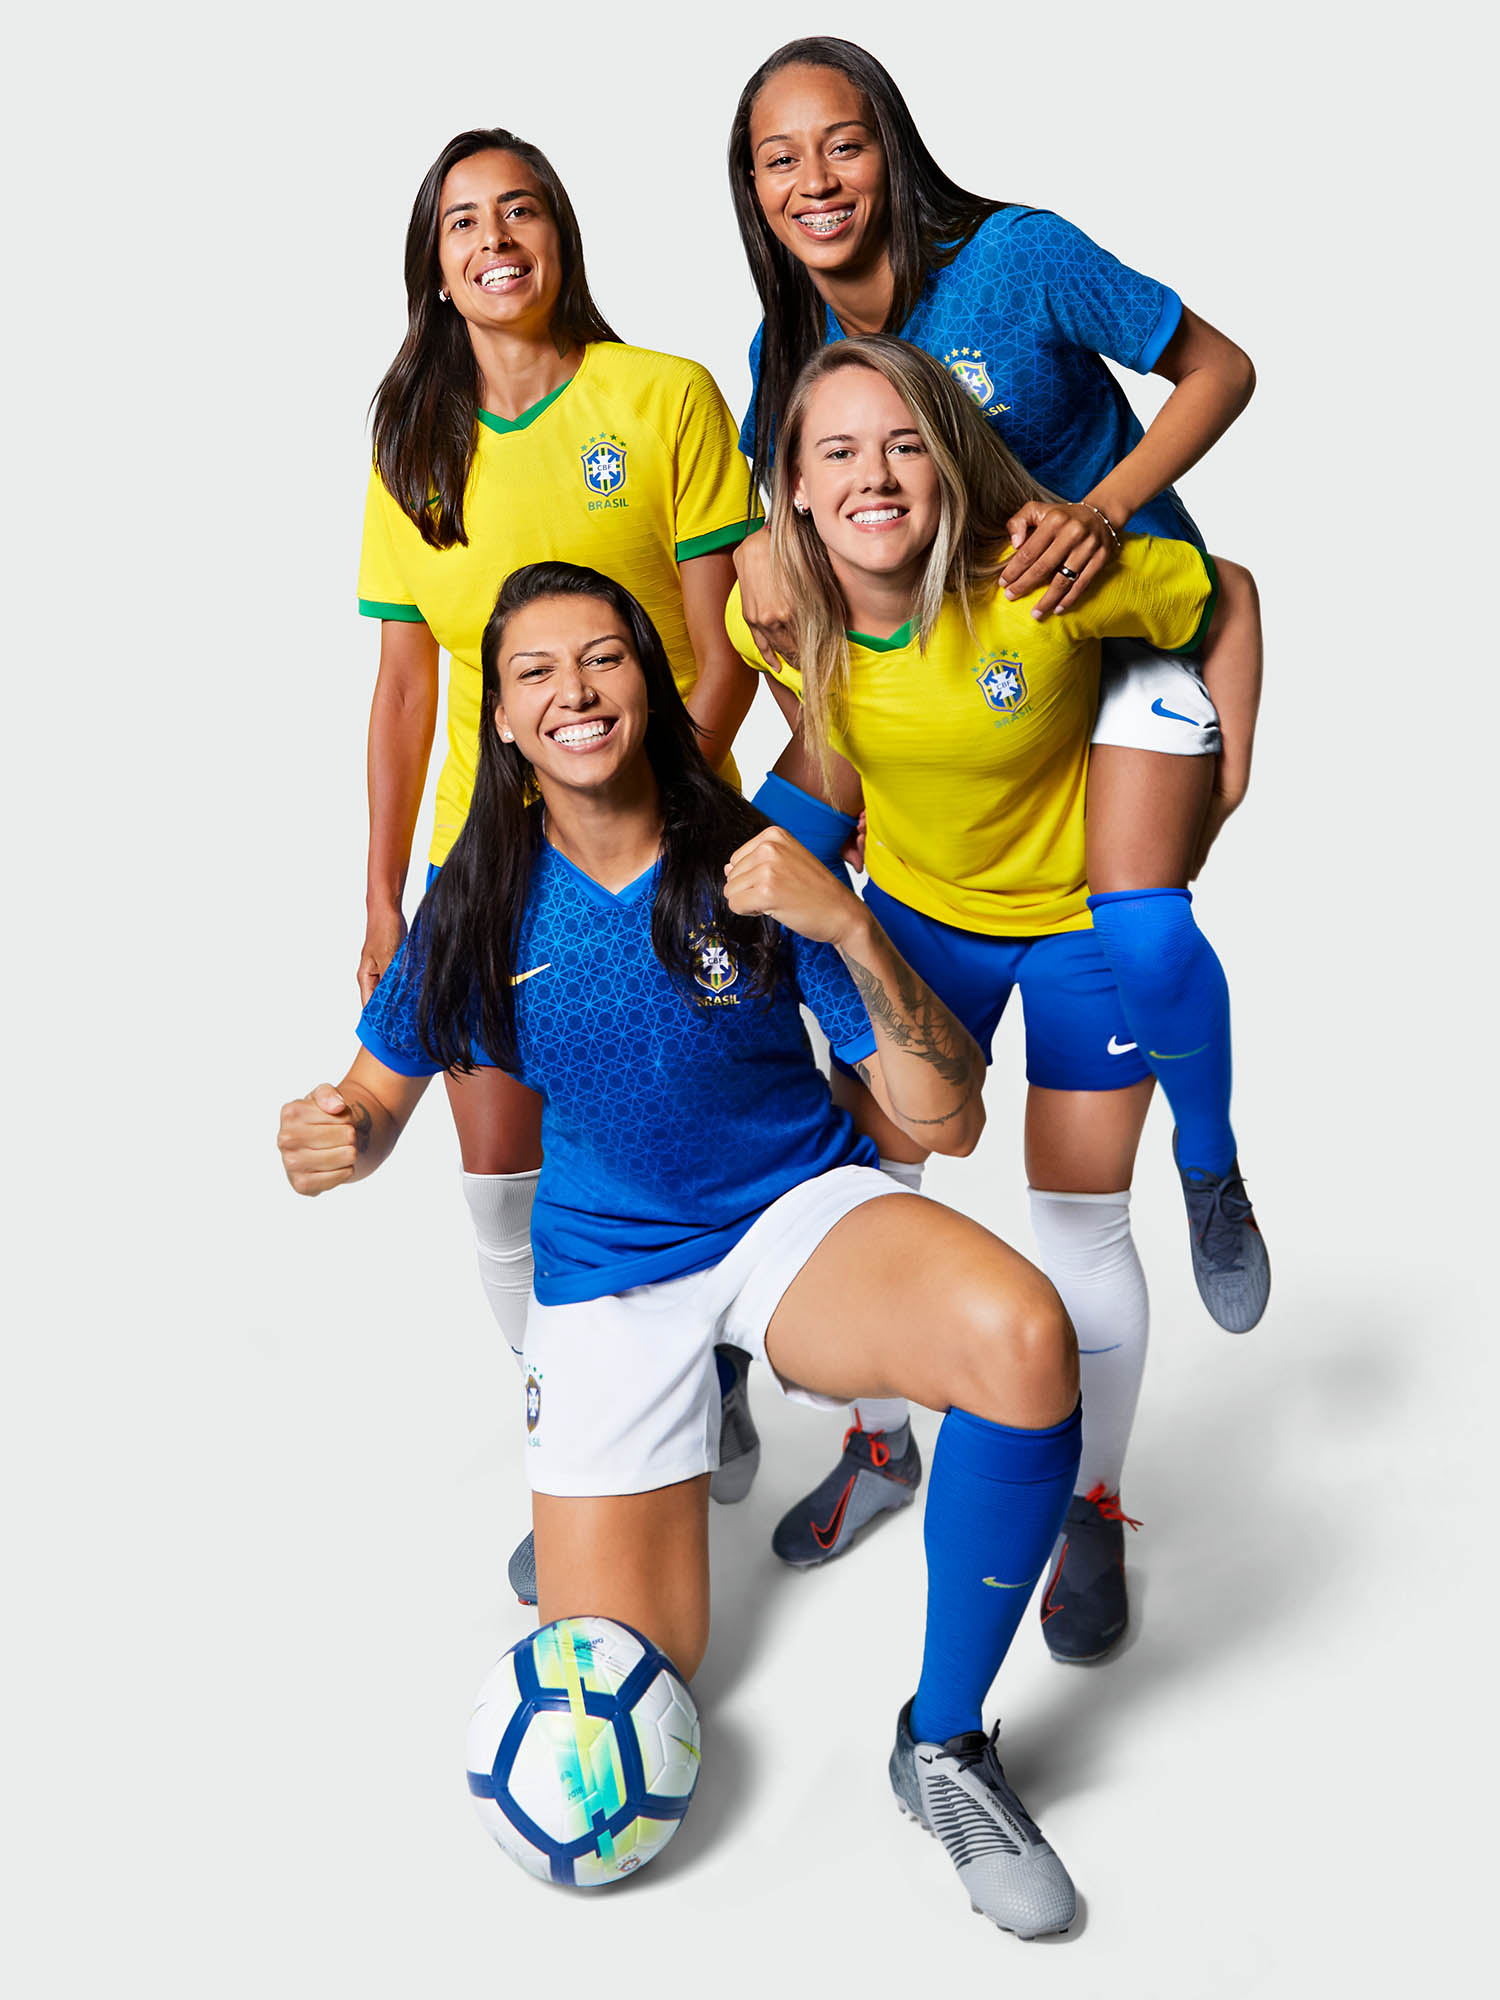 wwc portrait nike kits_0000_Brasil-2019-National-Team-Kit-Adressa-Alves-Andressinha-Bia-Zaneratto_Adriana-lien-01_origin.jpg